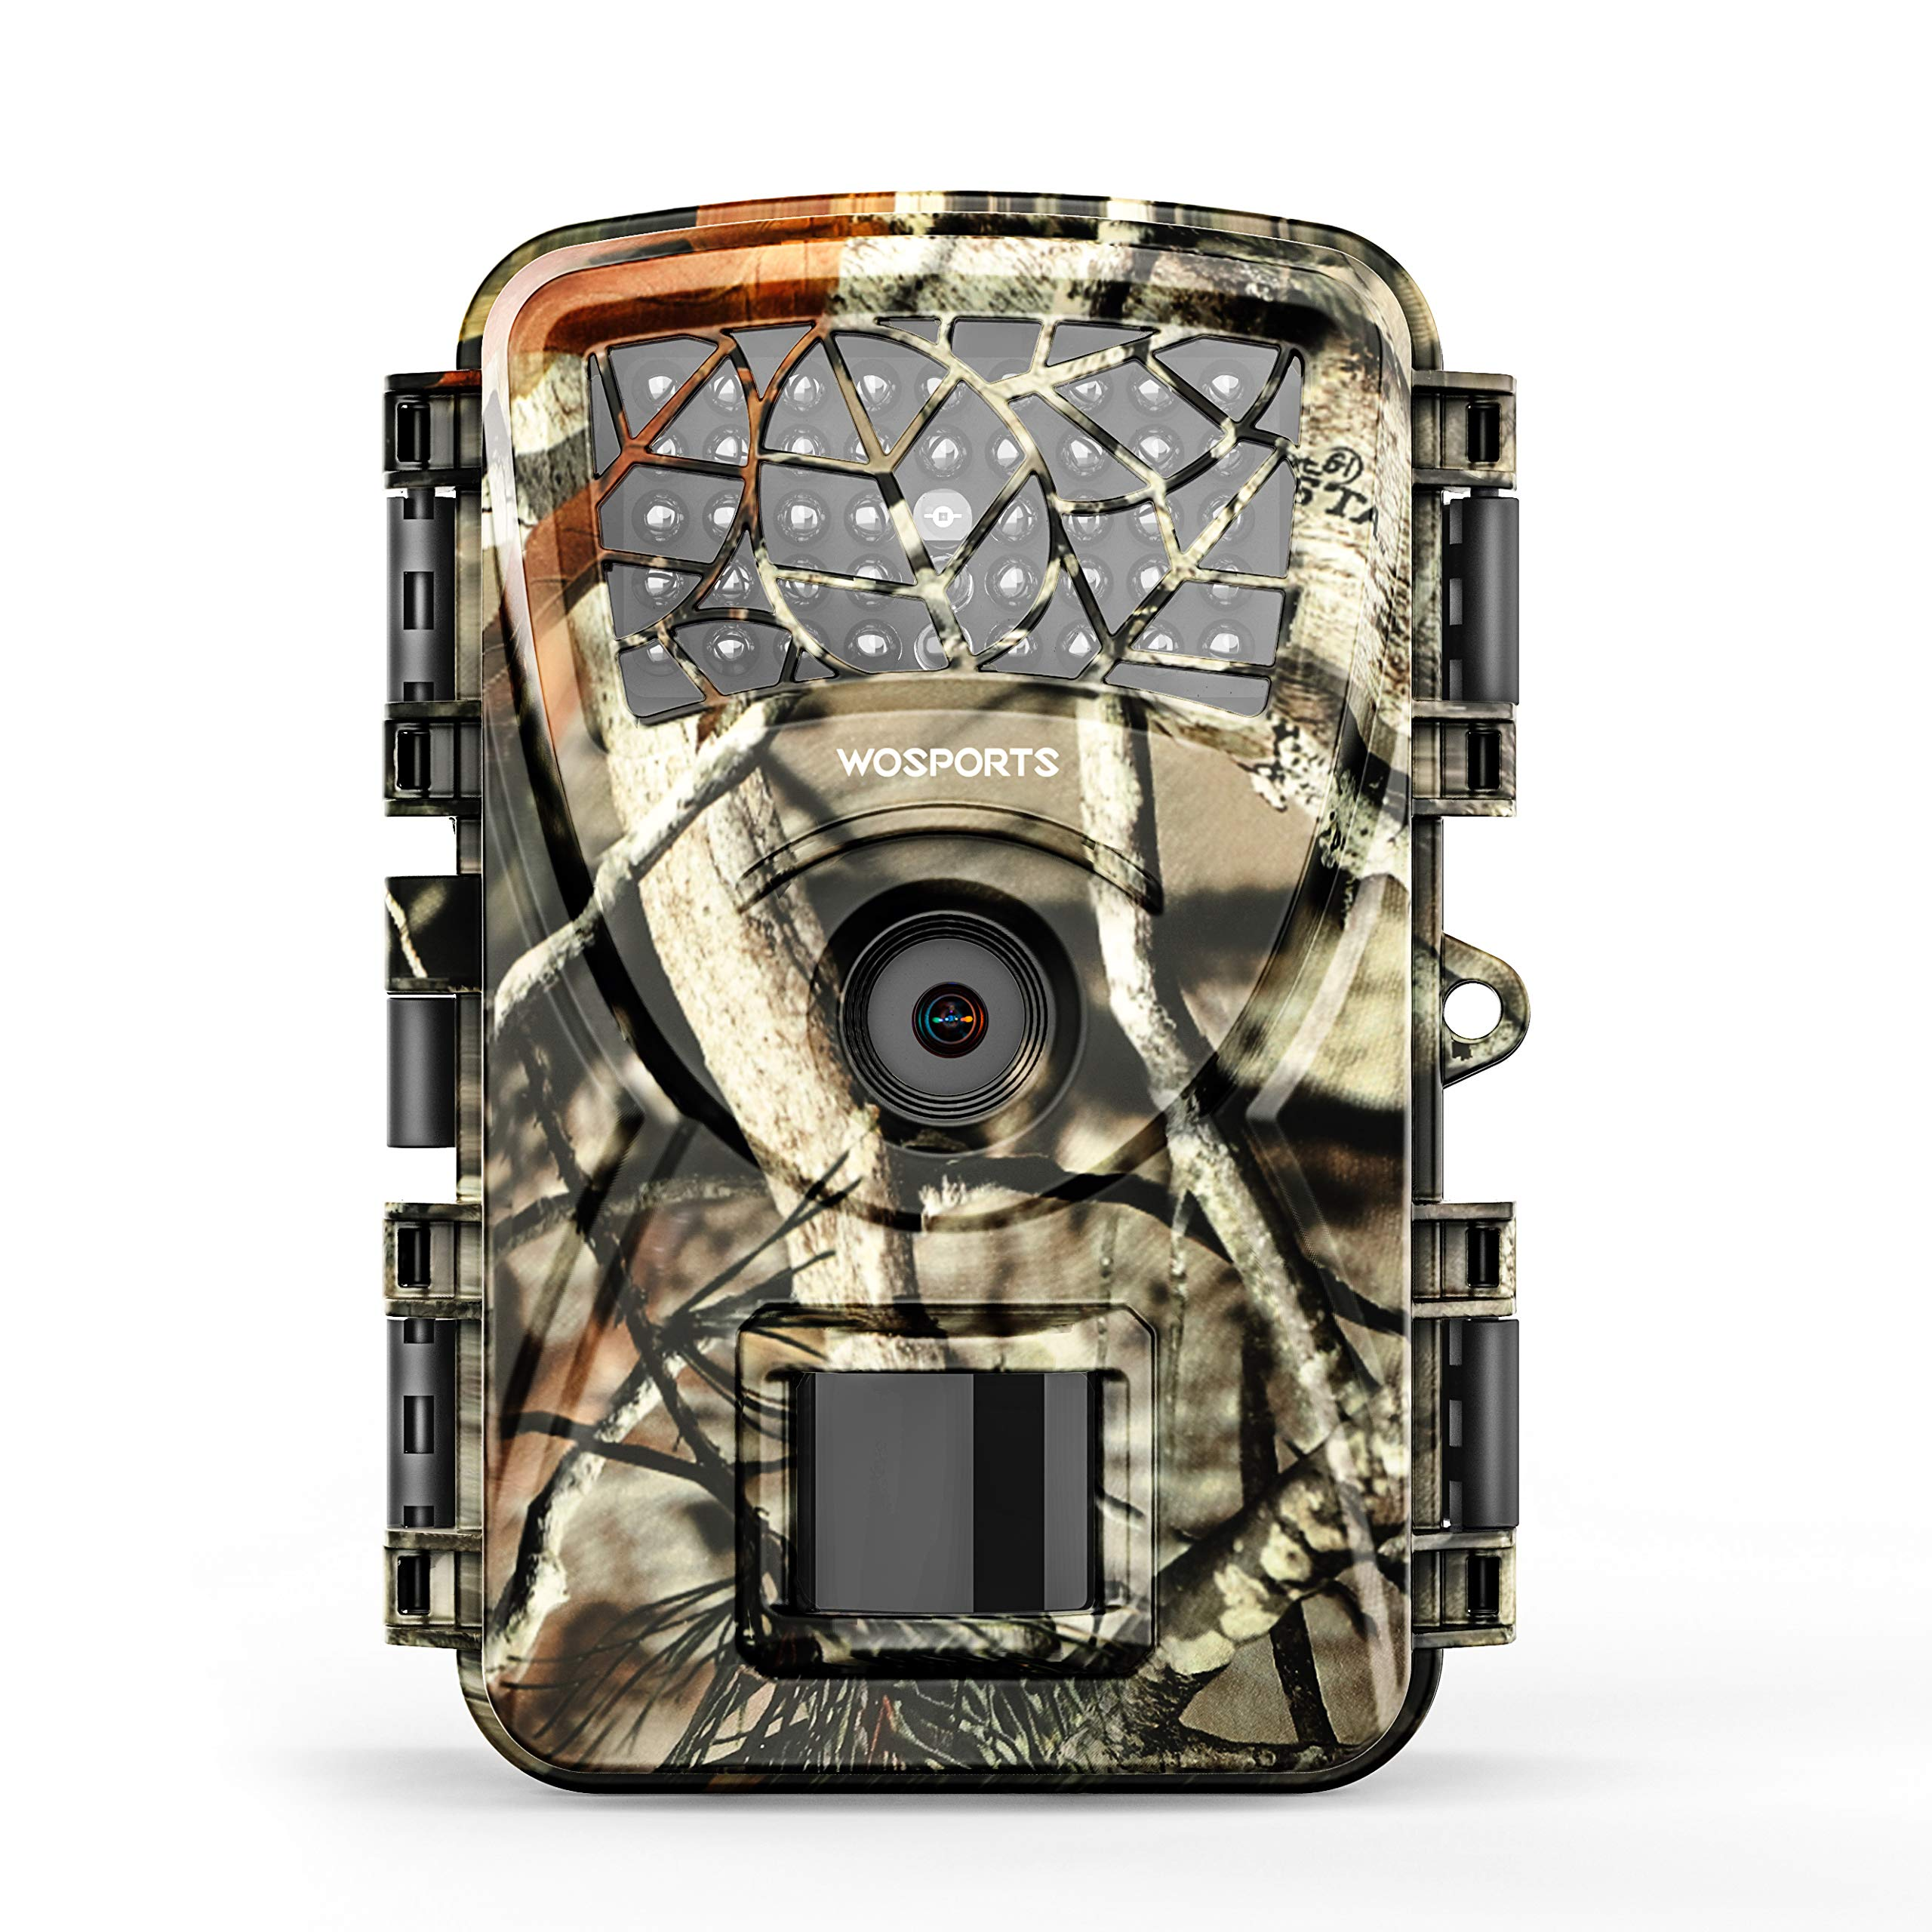 Trail Camera Hunting Game Camera, 2019 Upgraded Motion Activated Night Vision up to 65ft,1080P Full HD Waterproof Wildlife Scouting Monitoring Home Security Camera, 88D (Trail Camera-Camo) by WOSPORTS